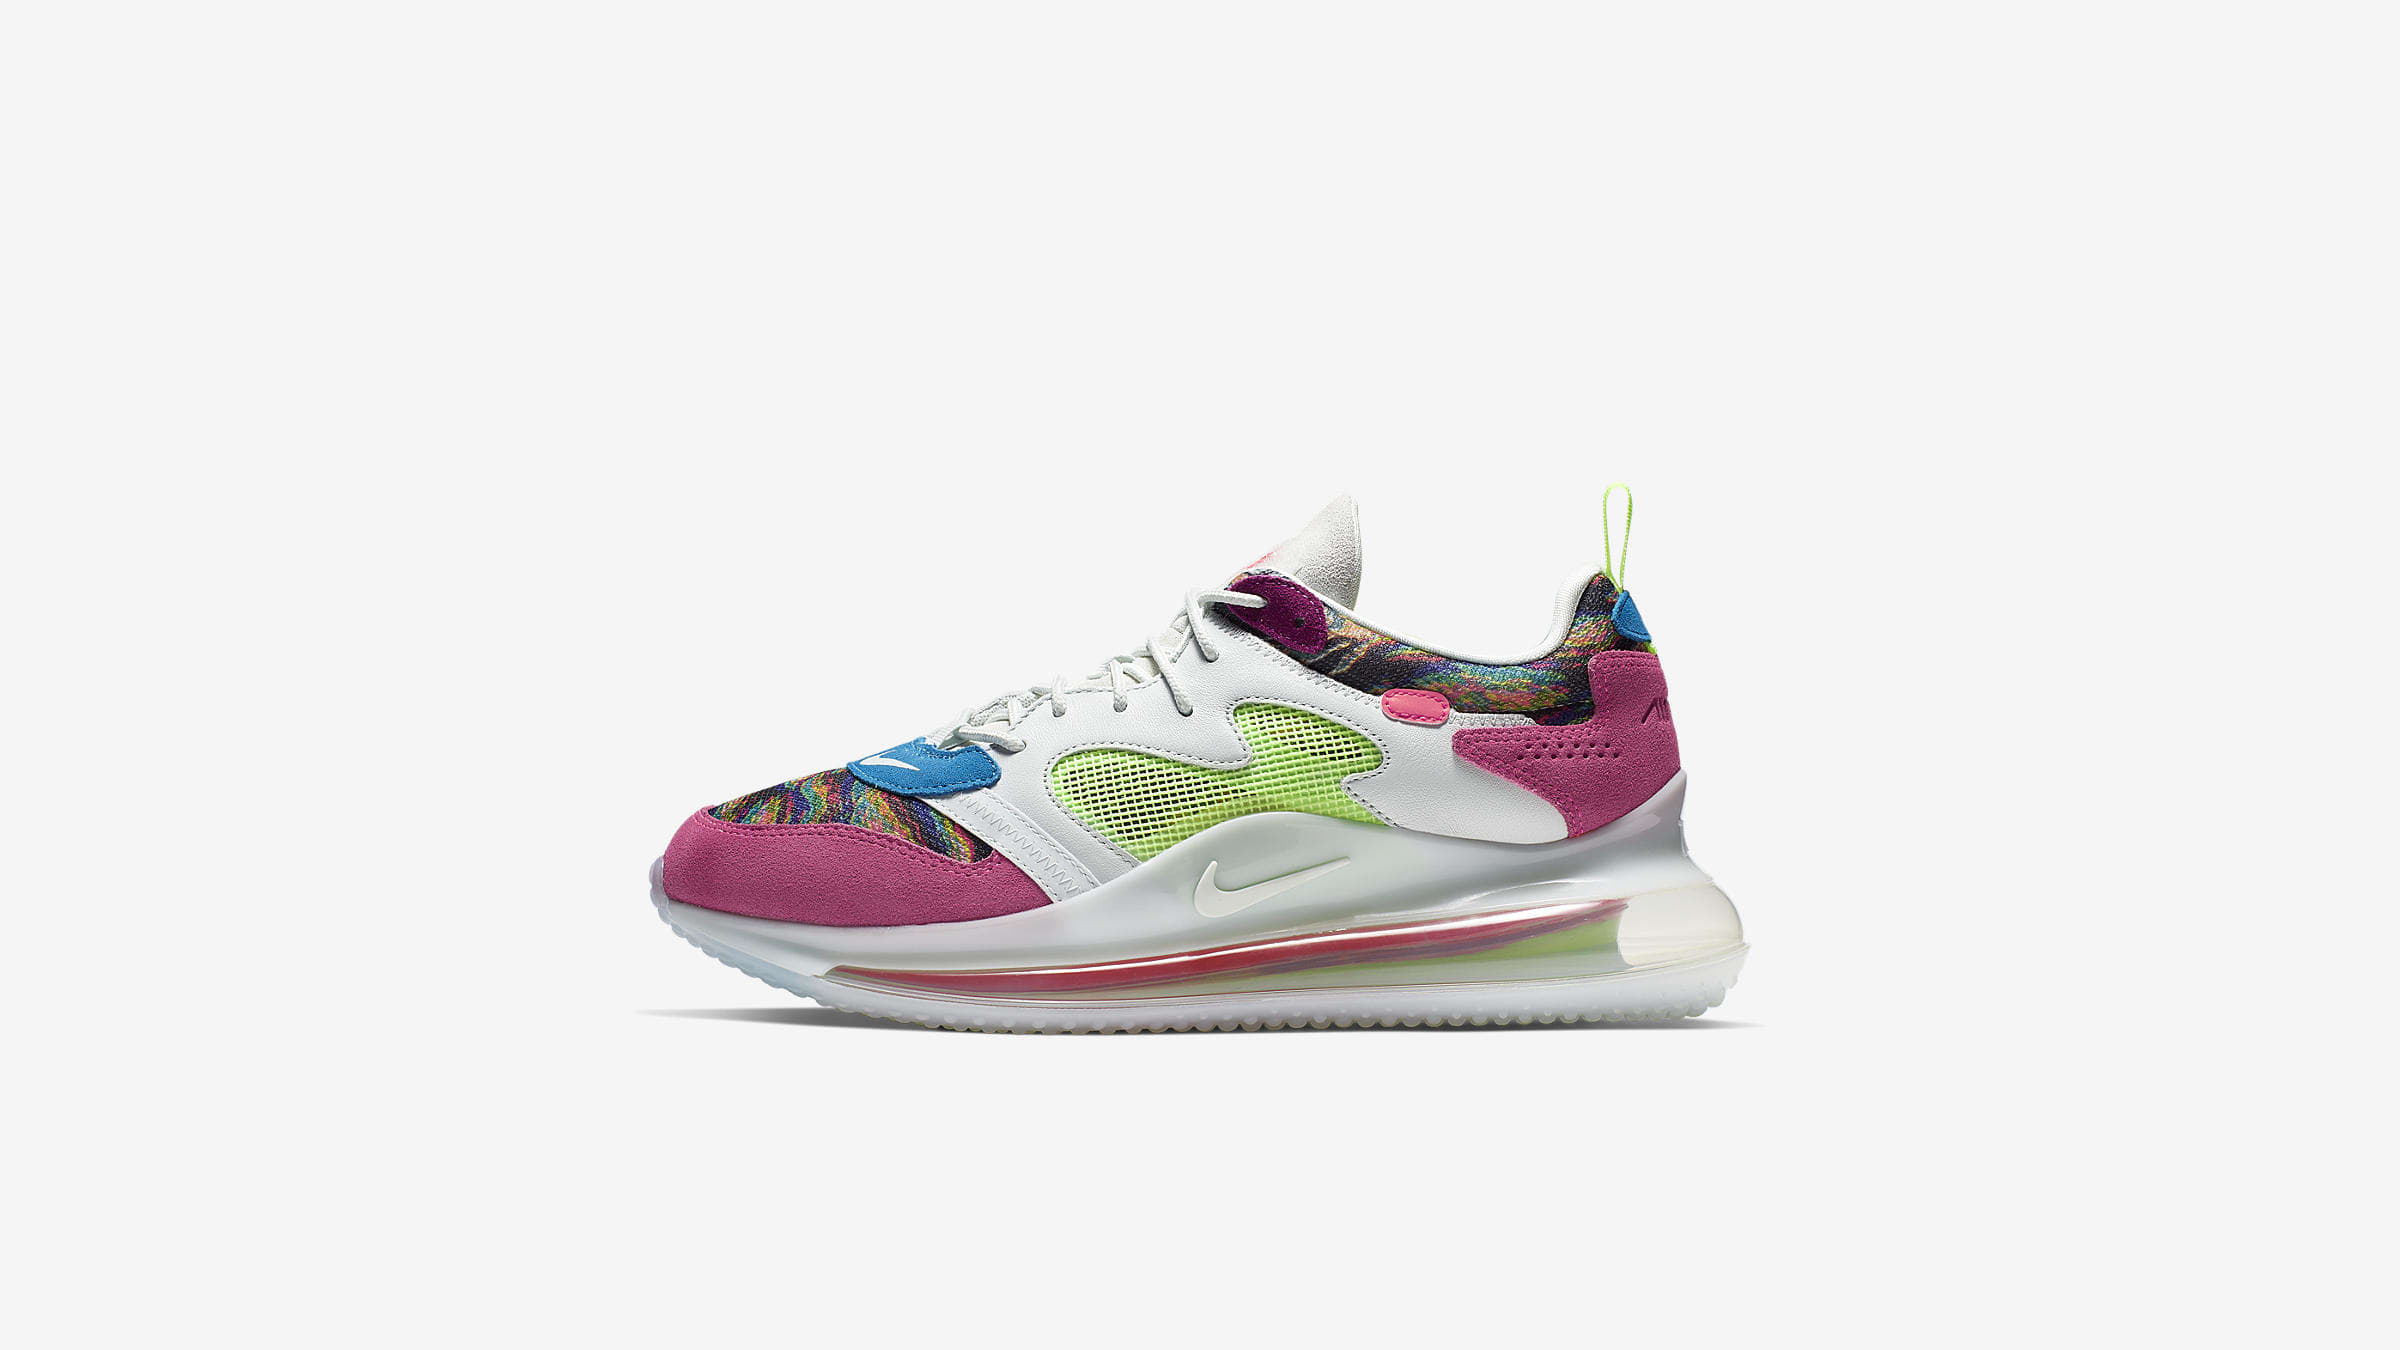 END. Features | Nike x Odell Beckham Jr Air Max 720